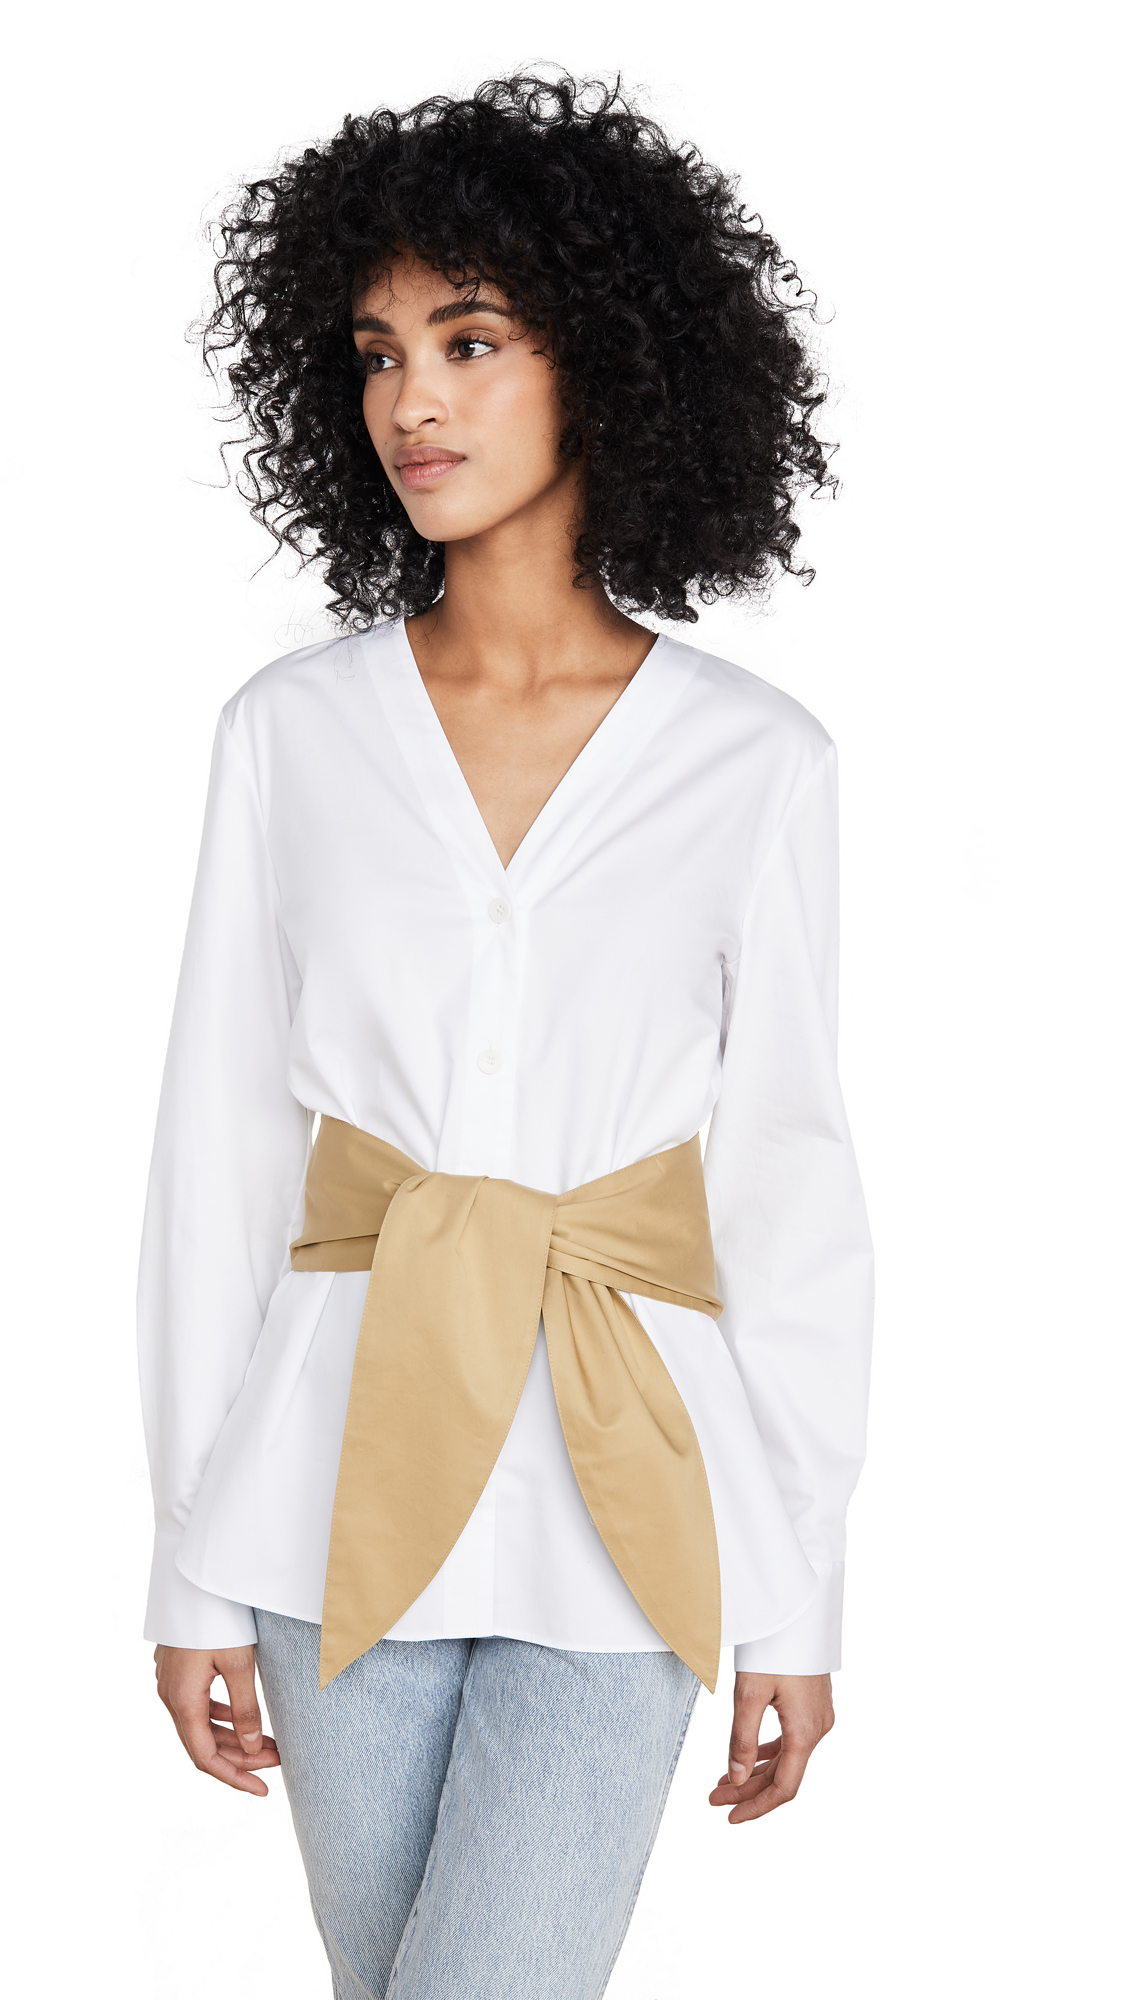 Tibi V Neck Shirt with Removable Tie - White Multi